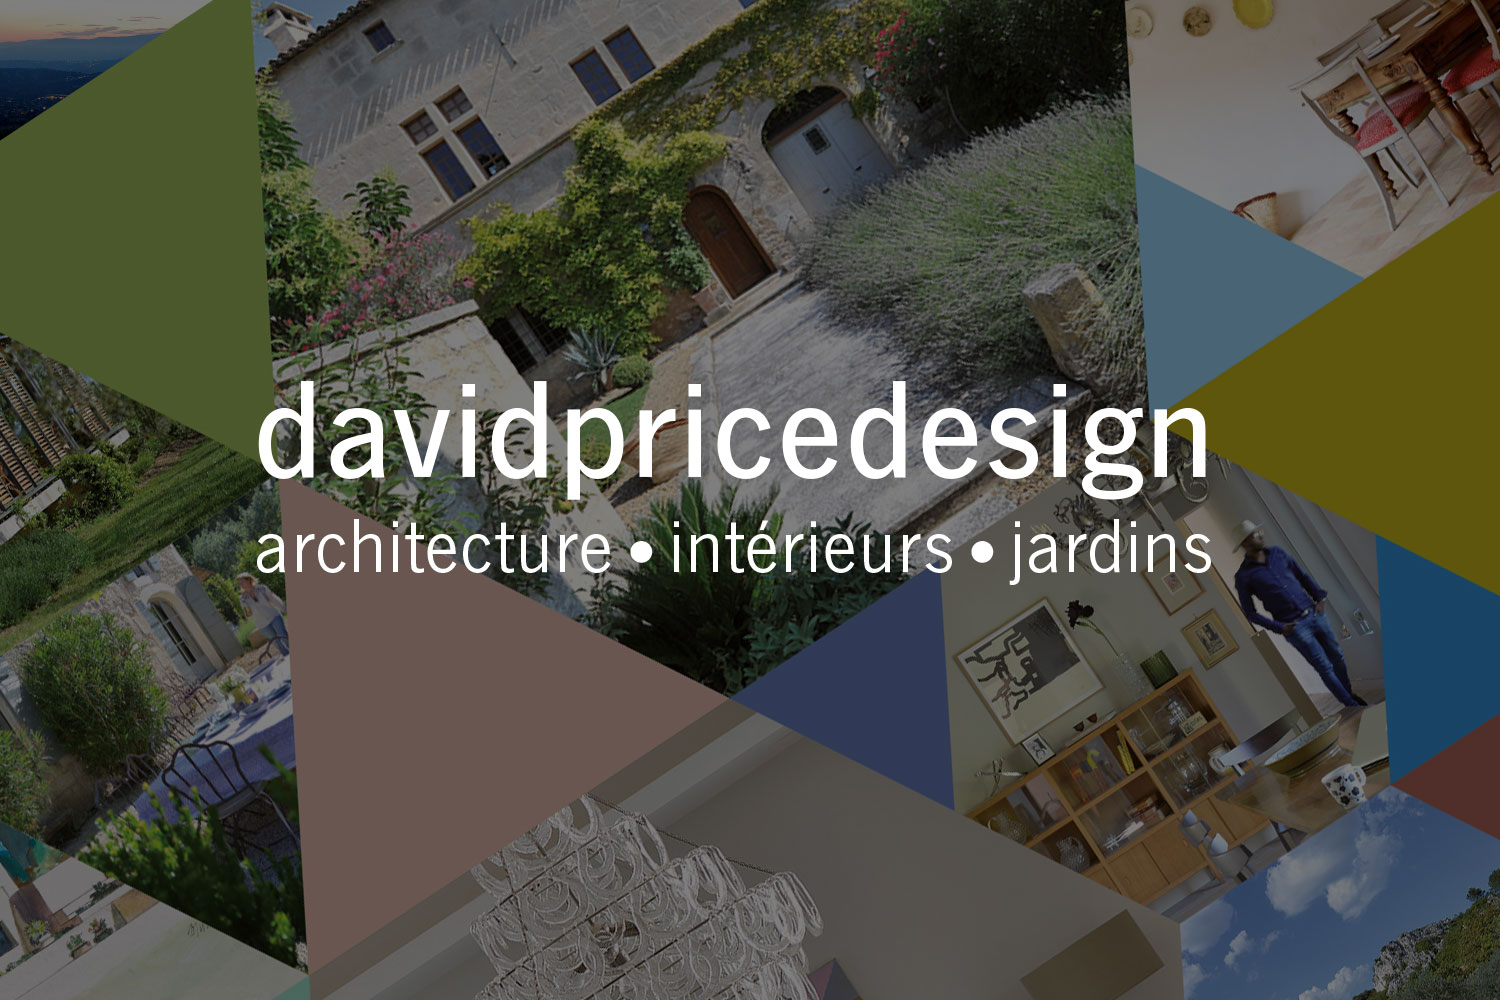 DAVID PRICE DESIGN     A vibrant new look for for one of the most highly-rated architecture and design studios in the South of France